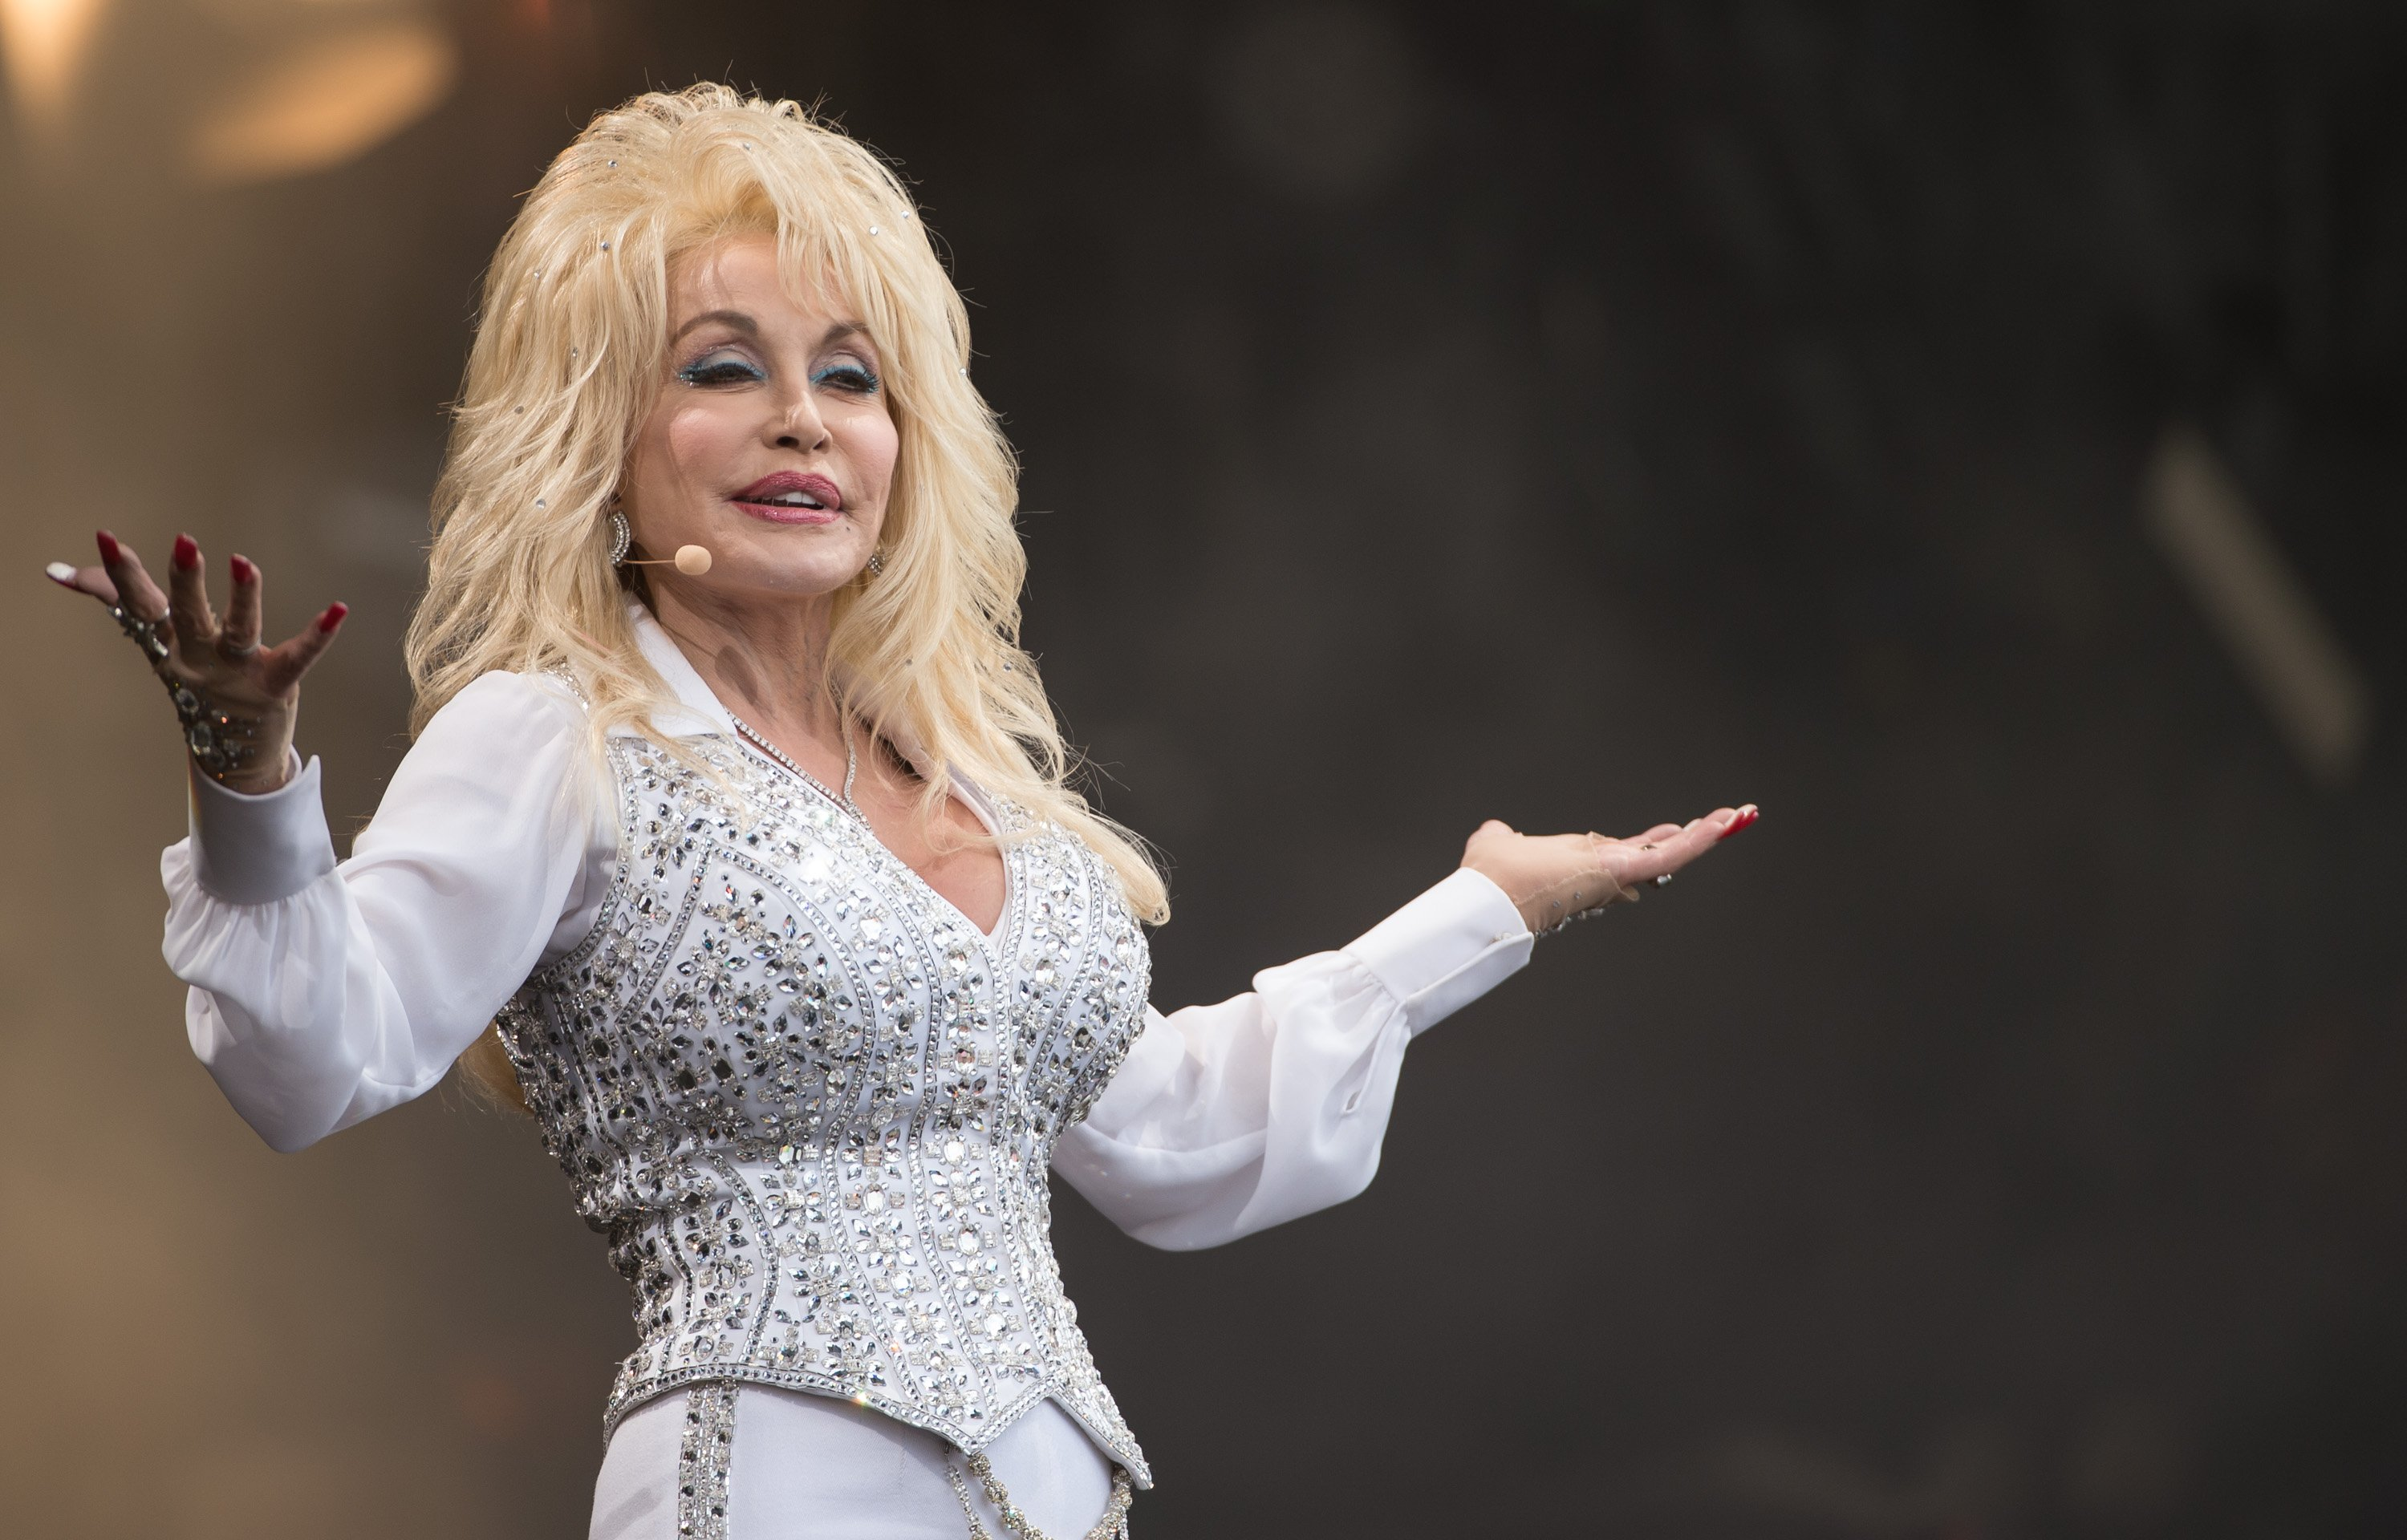 Dolly Parton performs on the Pyramid Stage during Day 3 of the Glastonbury Festival at Worthy Farm on June 29, 2014 |Photo: Getty Images